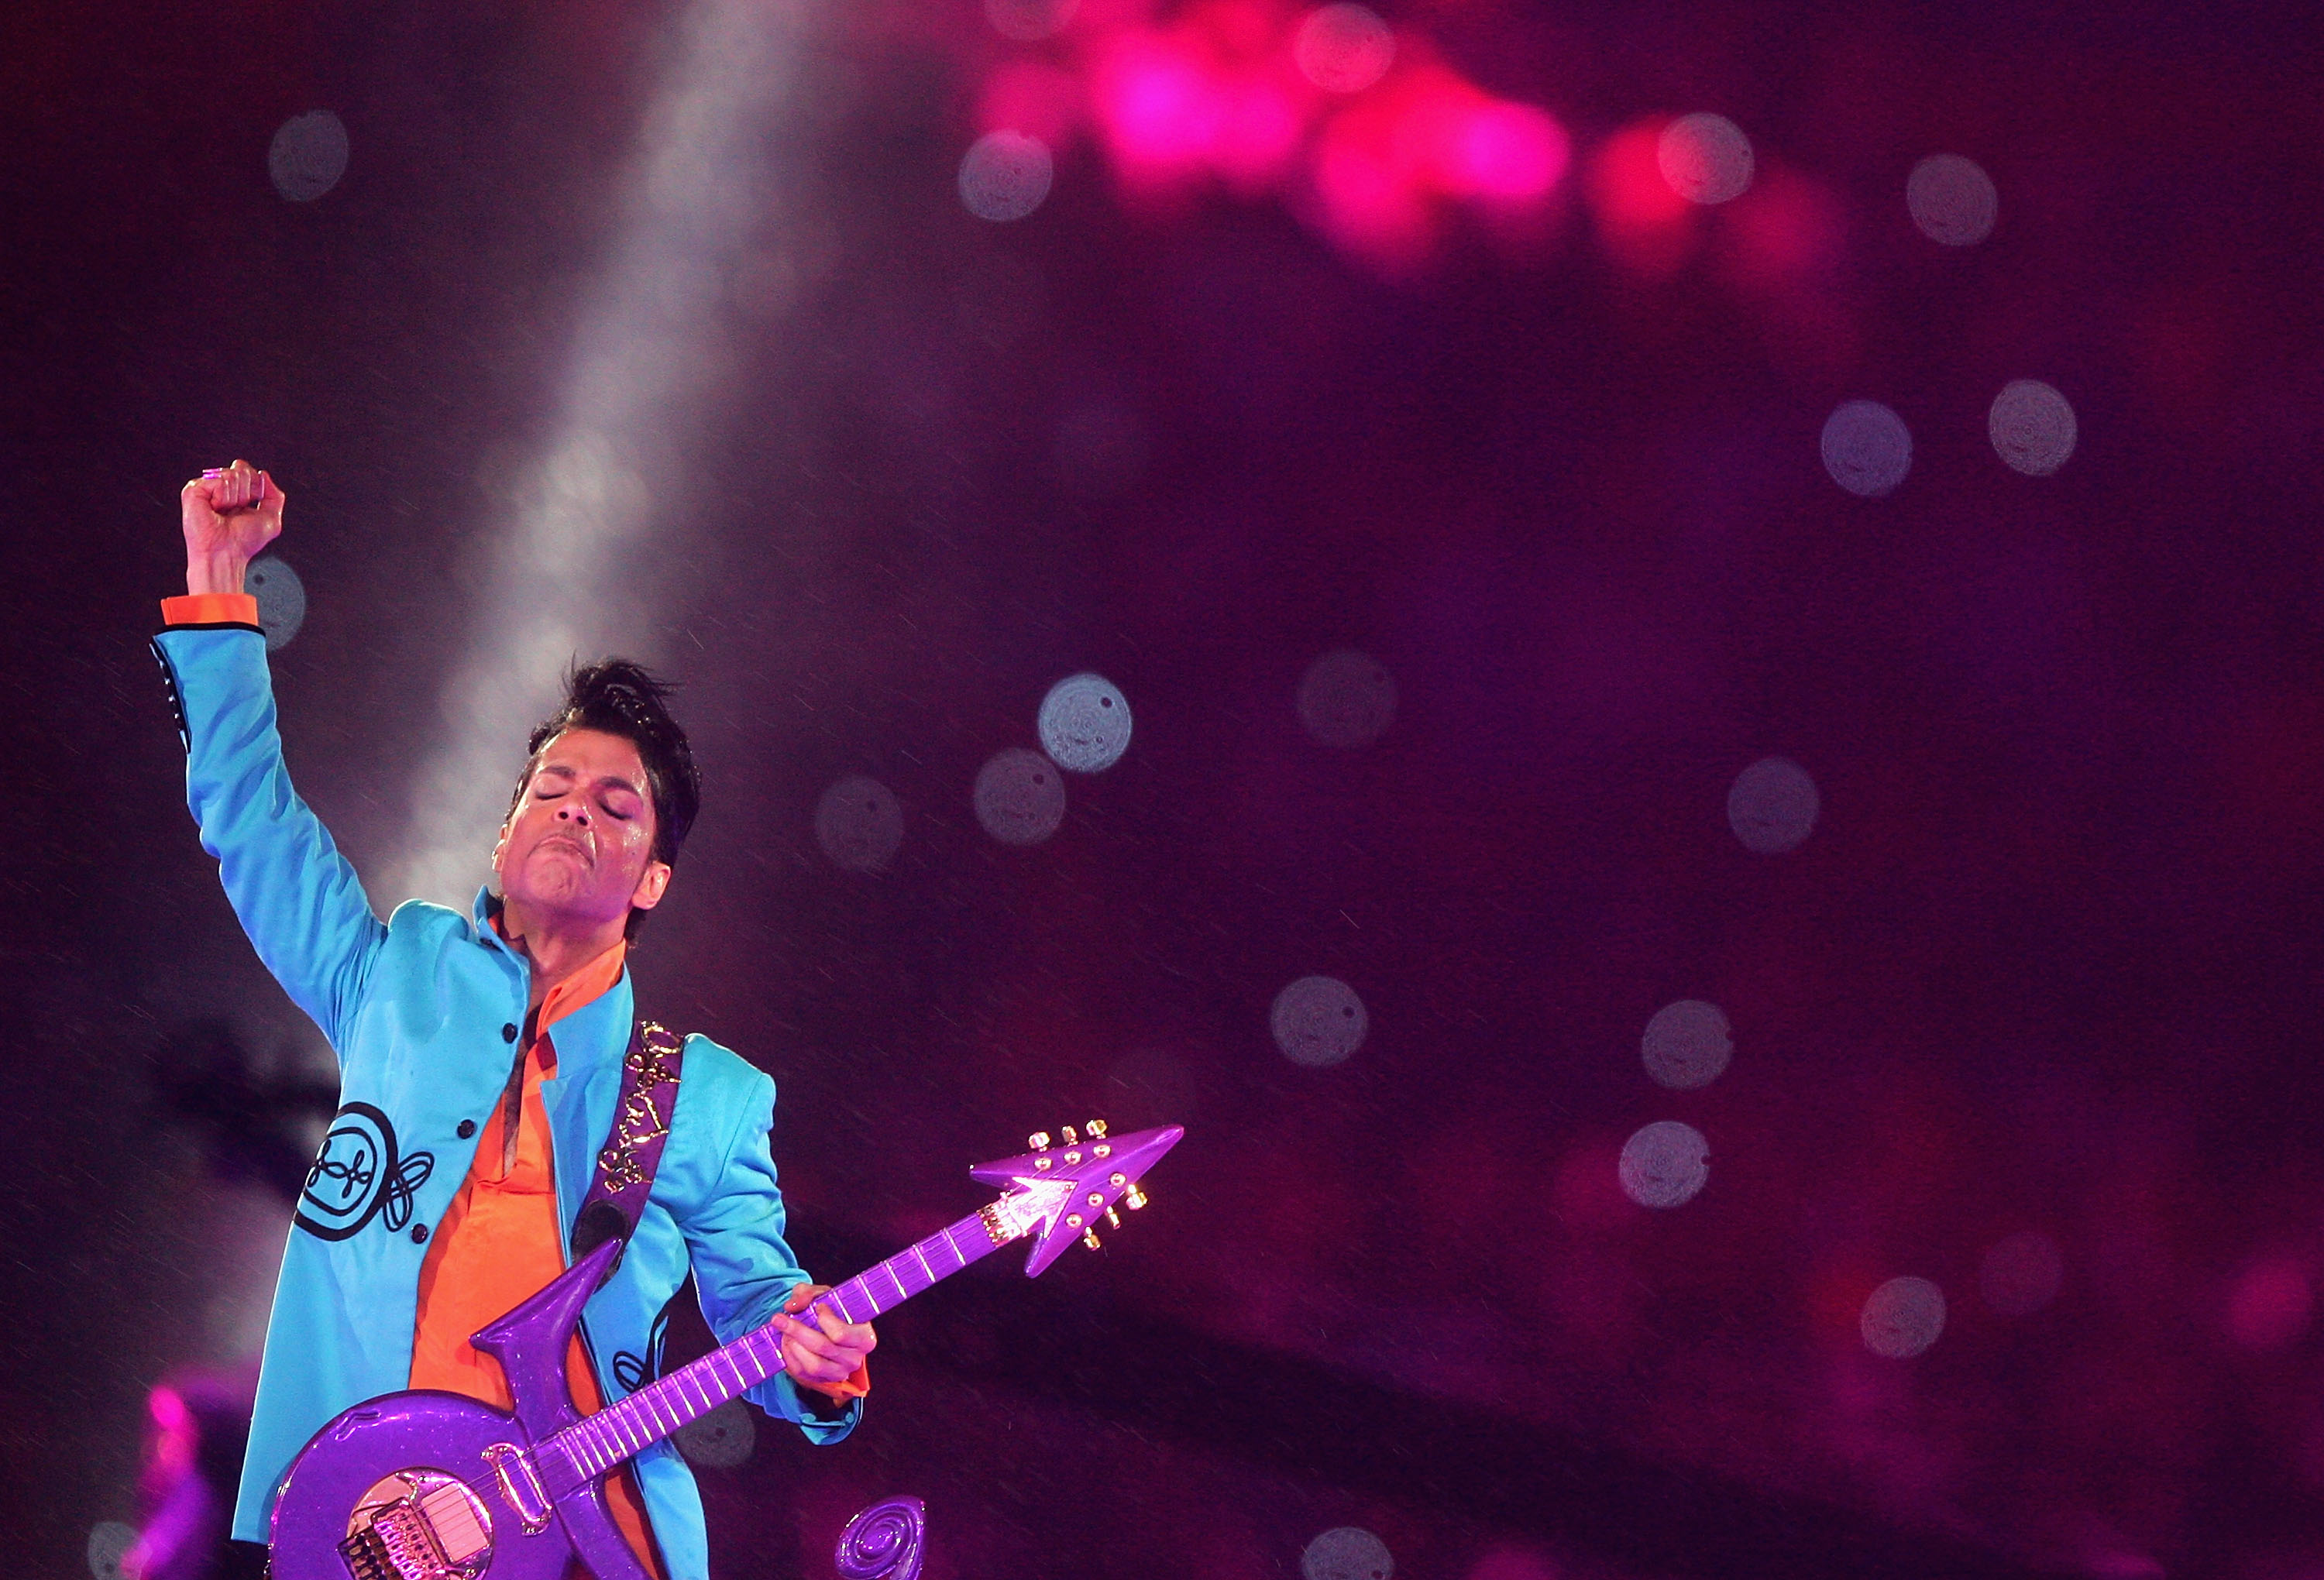 Prince triumphant at the 2007 Super Bowl